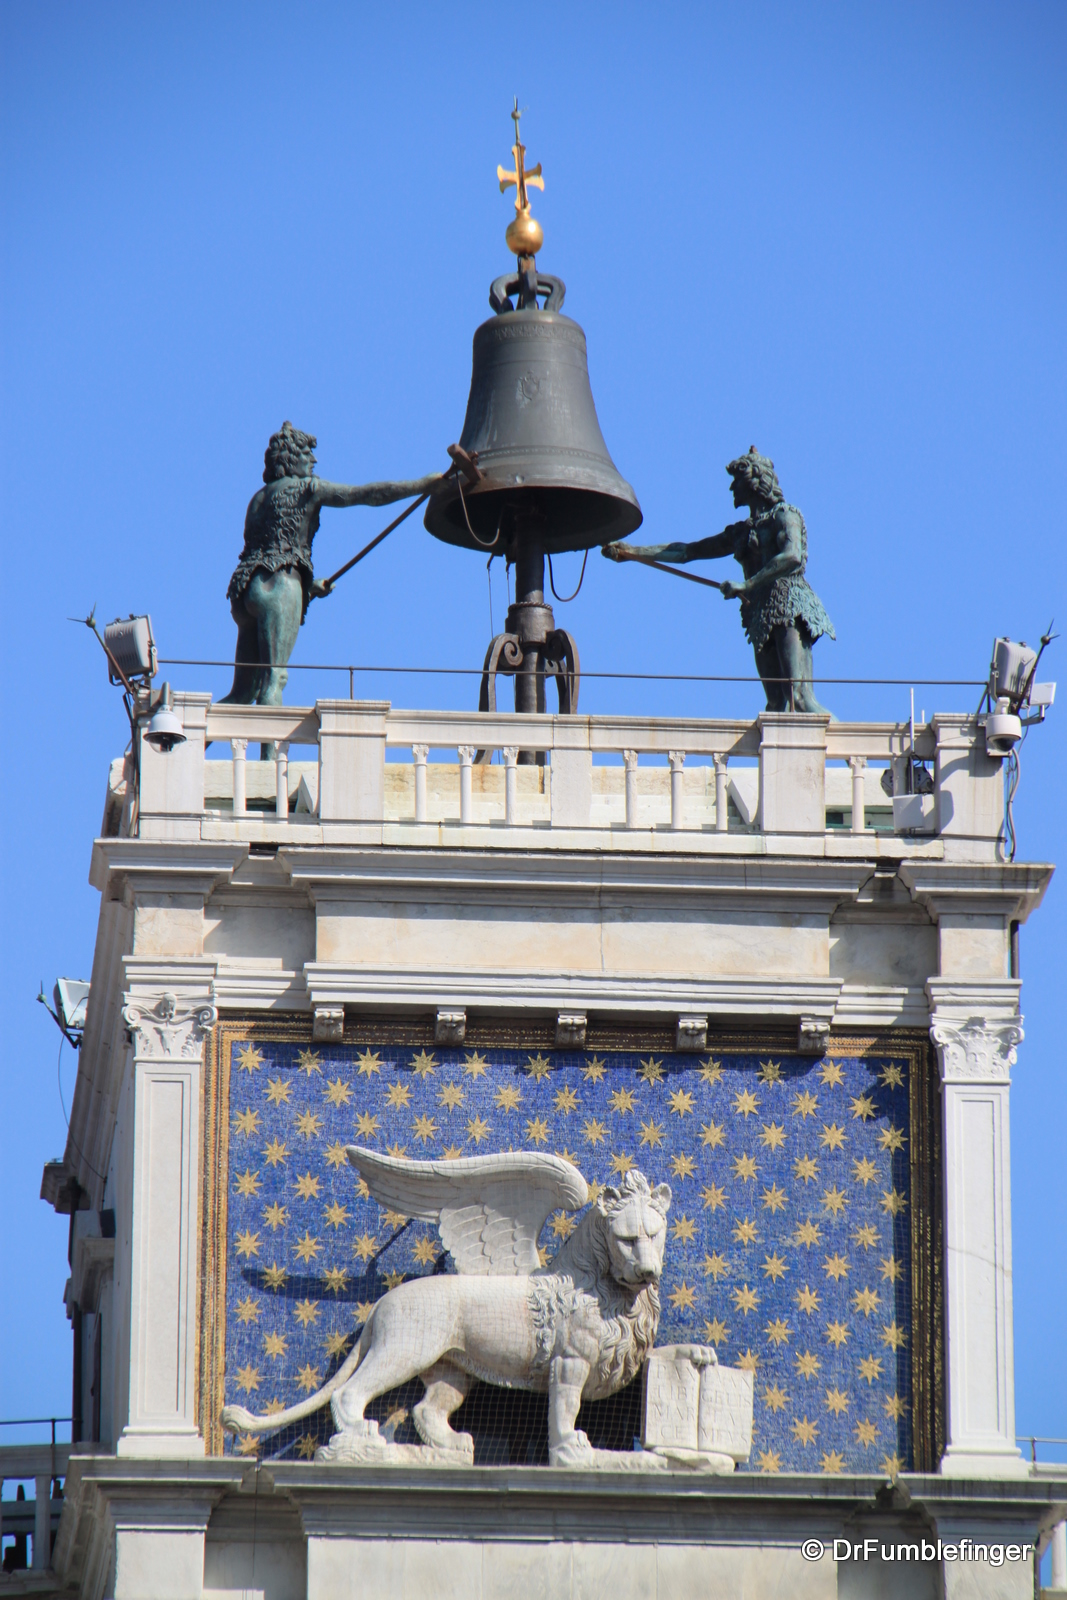 Clock tower, St. Mark's square